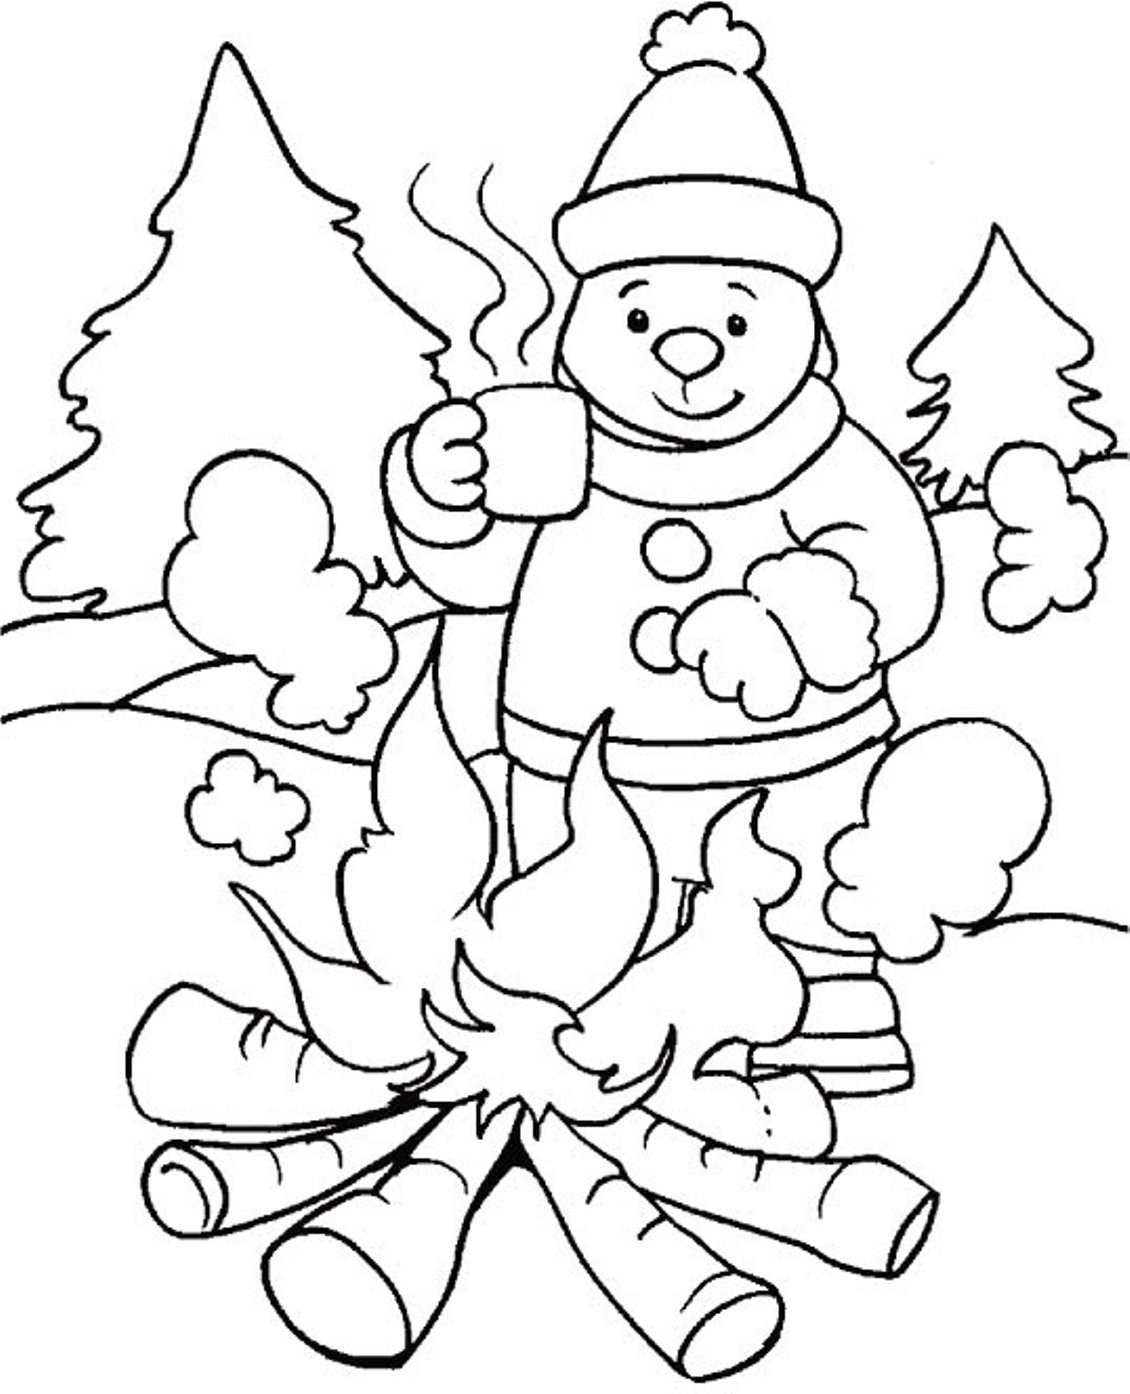 Winter Coloring Pages Printable Coloring Pages Winter Coloring Pagesor Kids New Youree Sheets